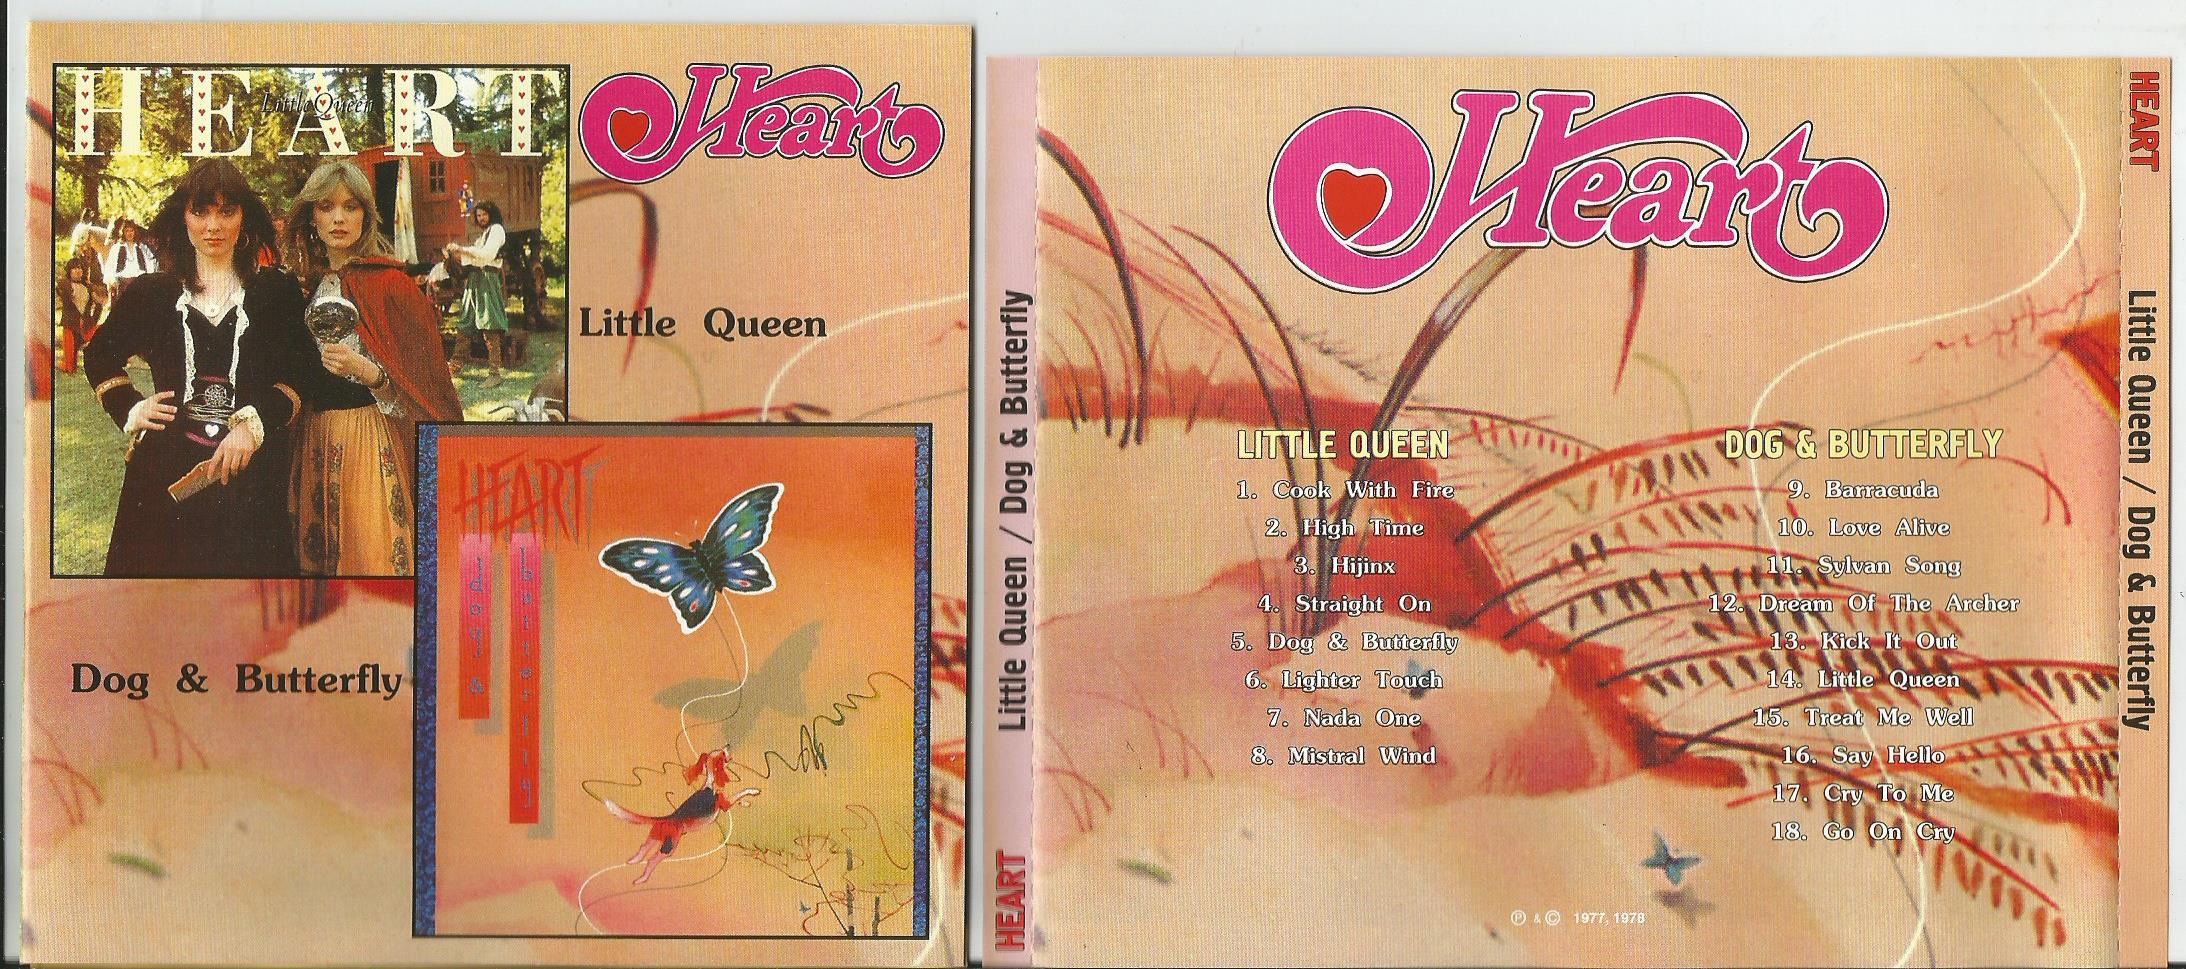 HEART Little Queen/ Dog & Butterfly (2 in 1CD)(with lyrics)